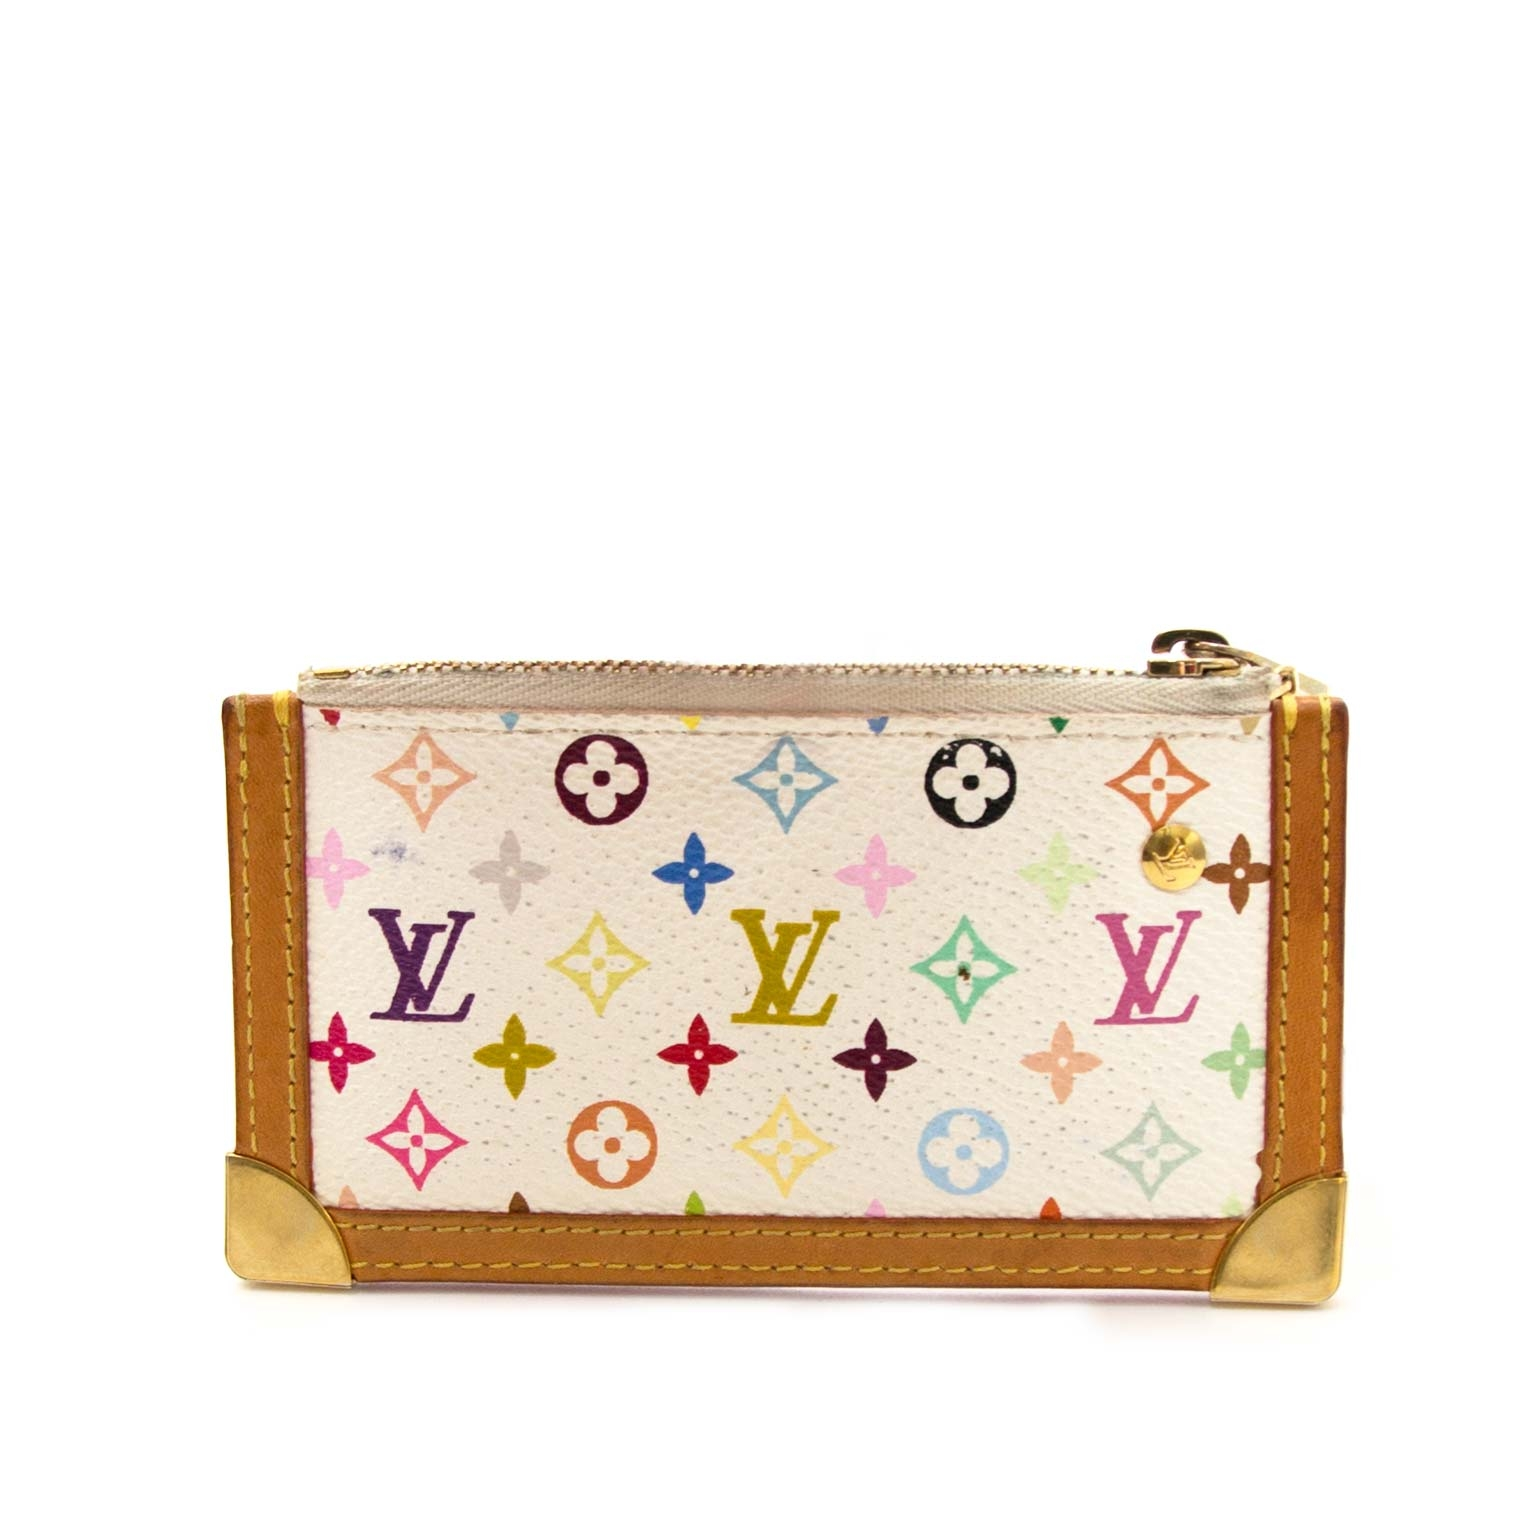 Buy authentic luxury bags at Labellov at the lowest price